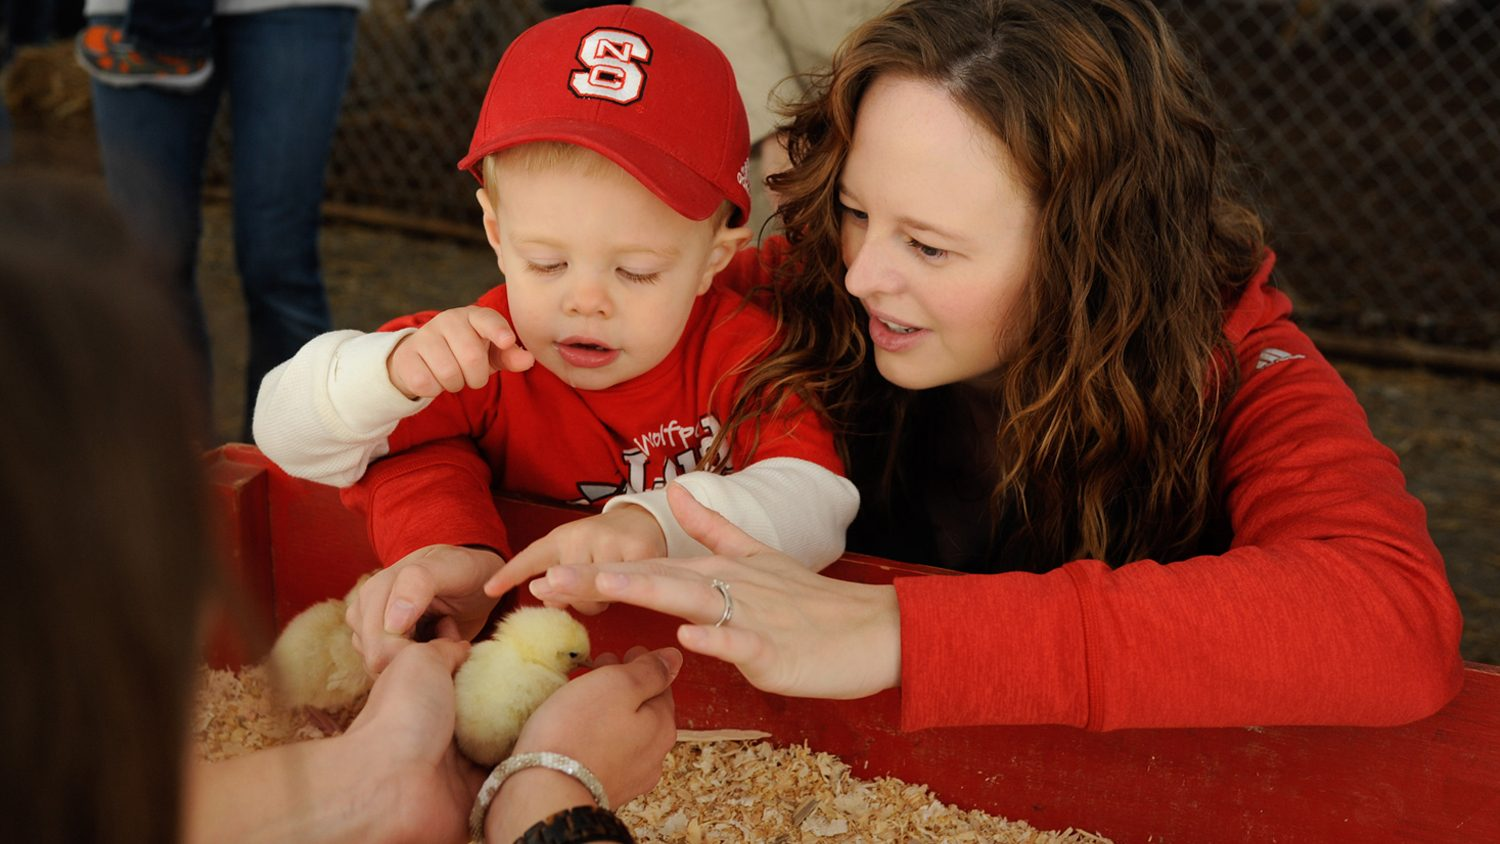 A young child and a woman petting baby chickens.